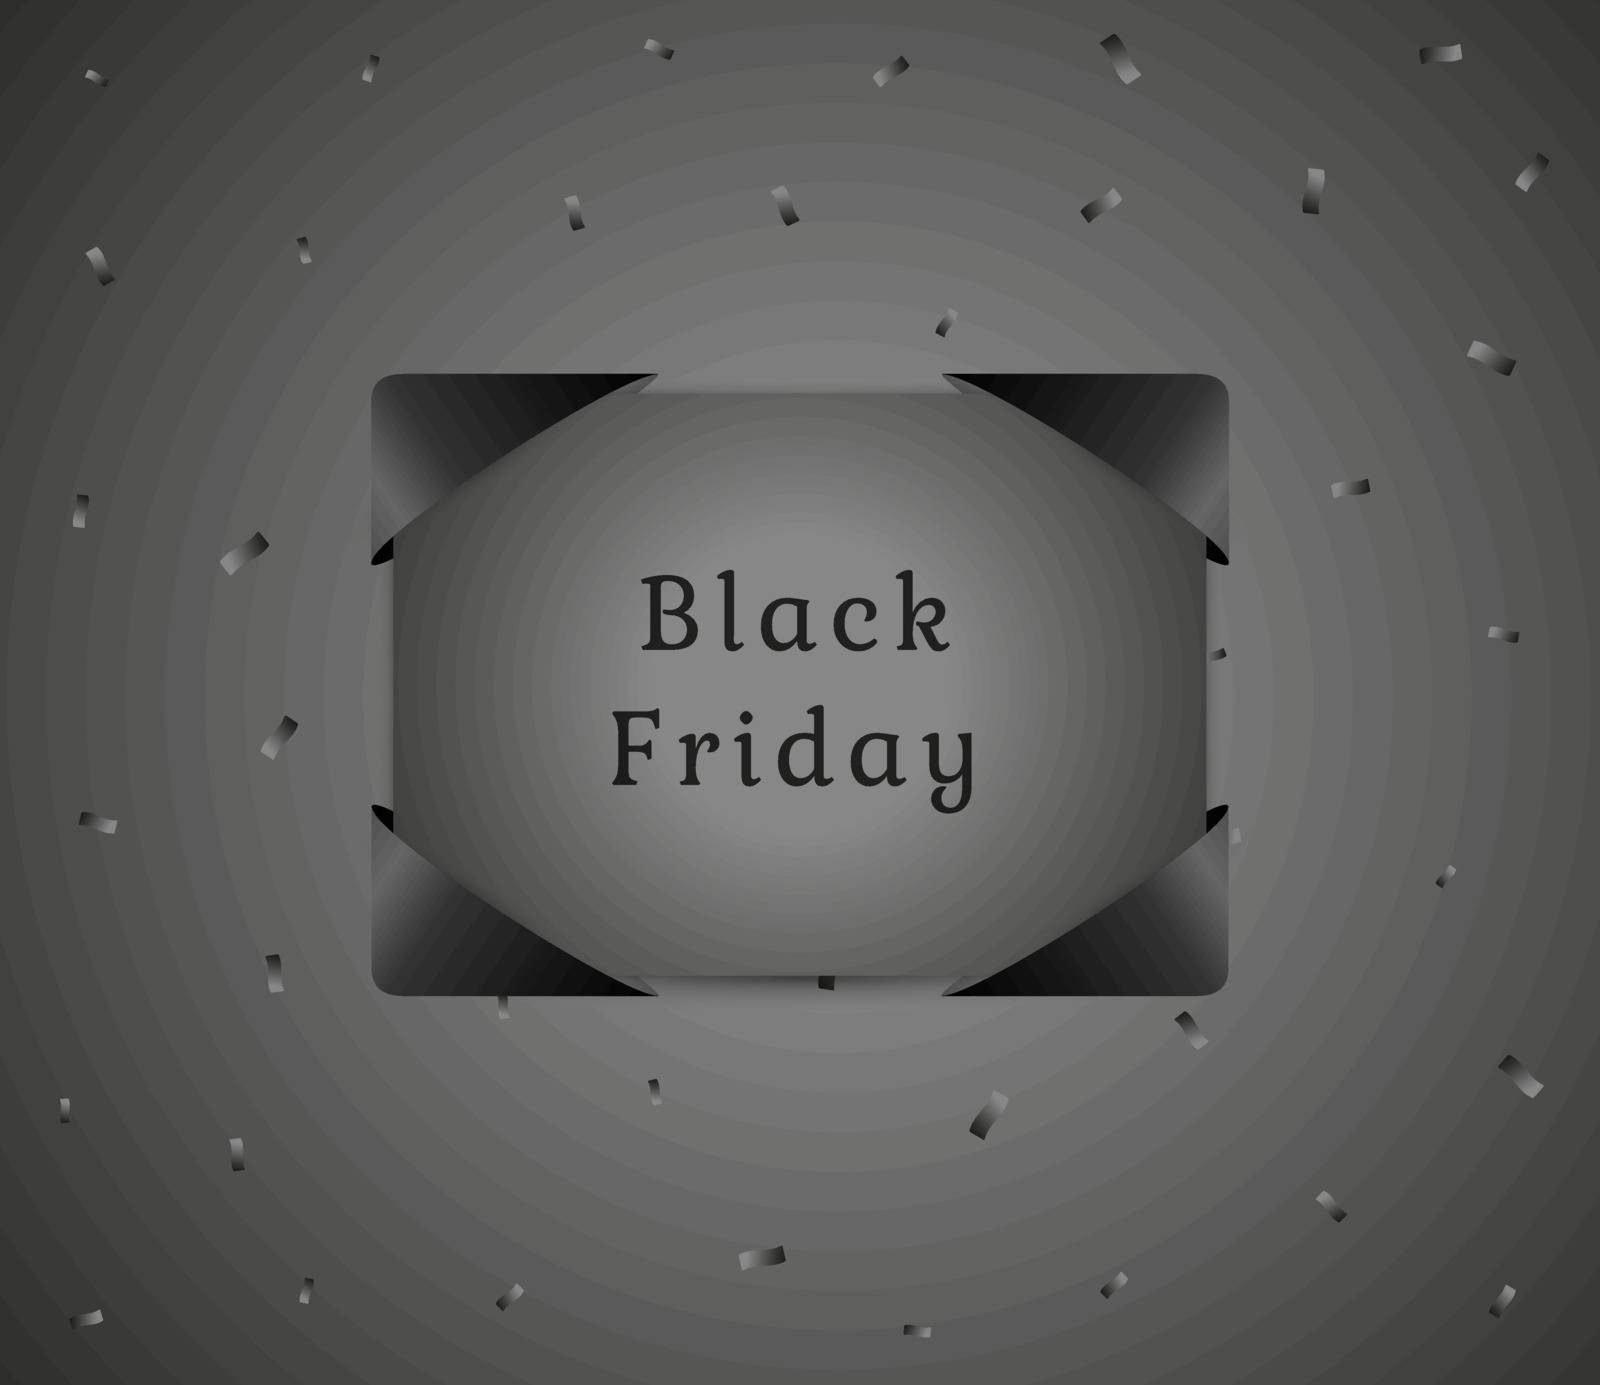 black friday gift with black confetti on dark gray gradient background